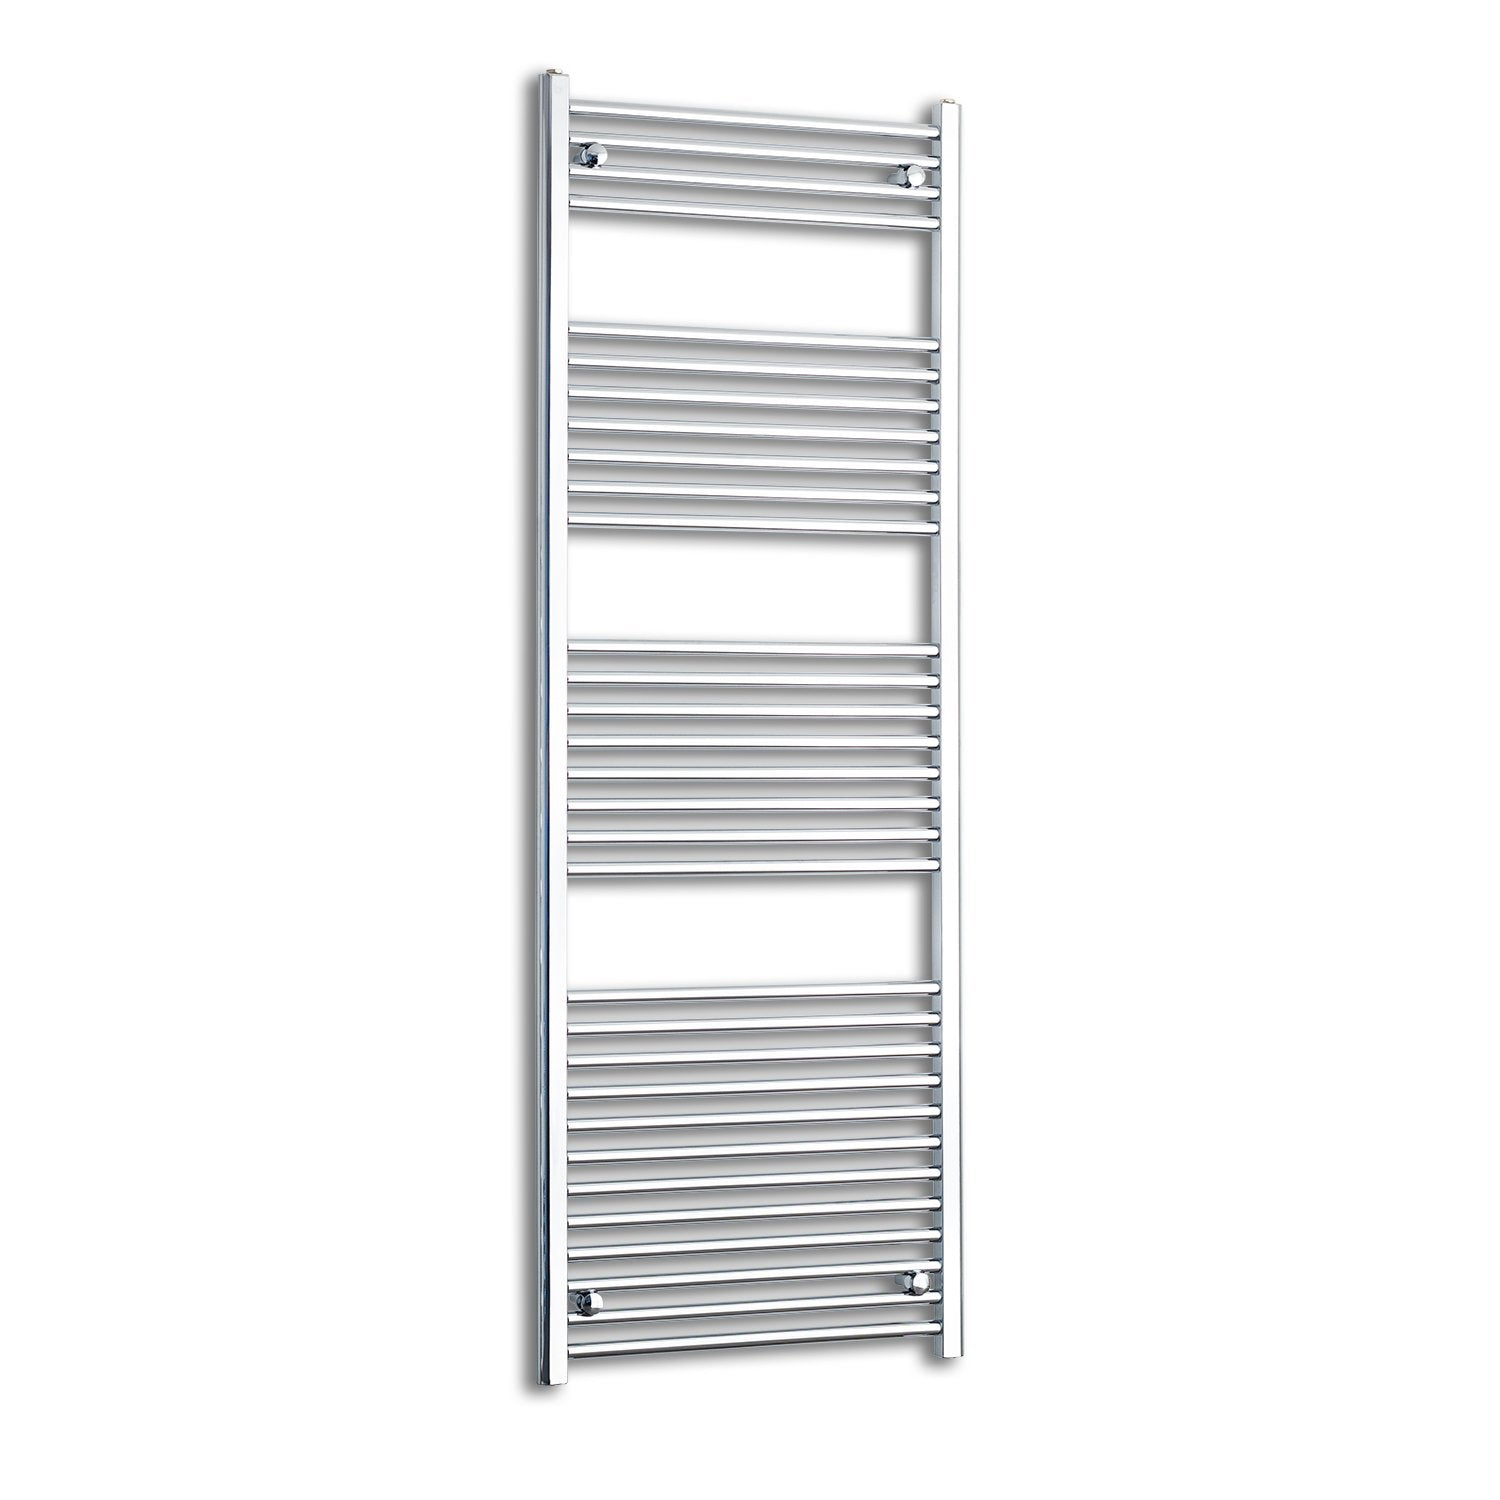 650mm Wide 1800mm High Flat Chrome Heated Towel Rail Radiator HTR,Towel Rail Only